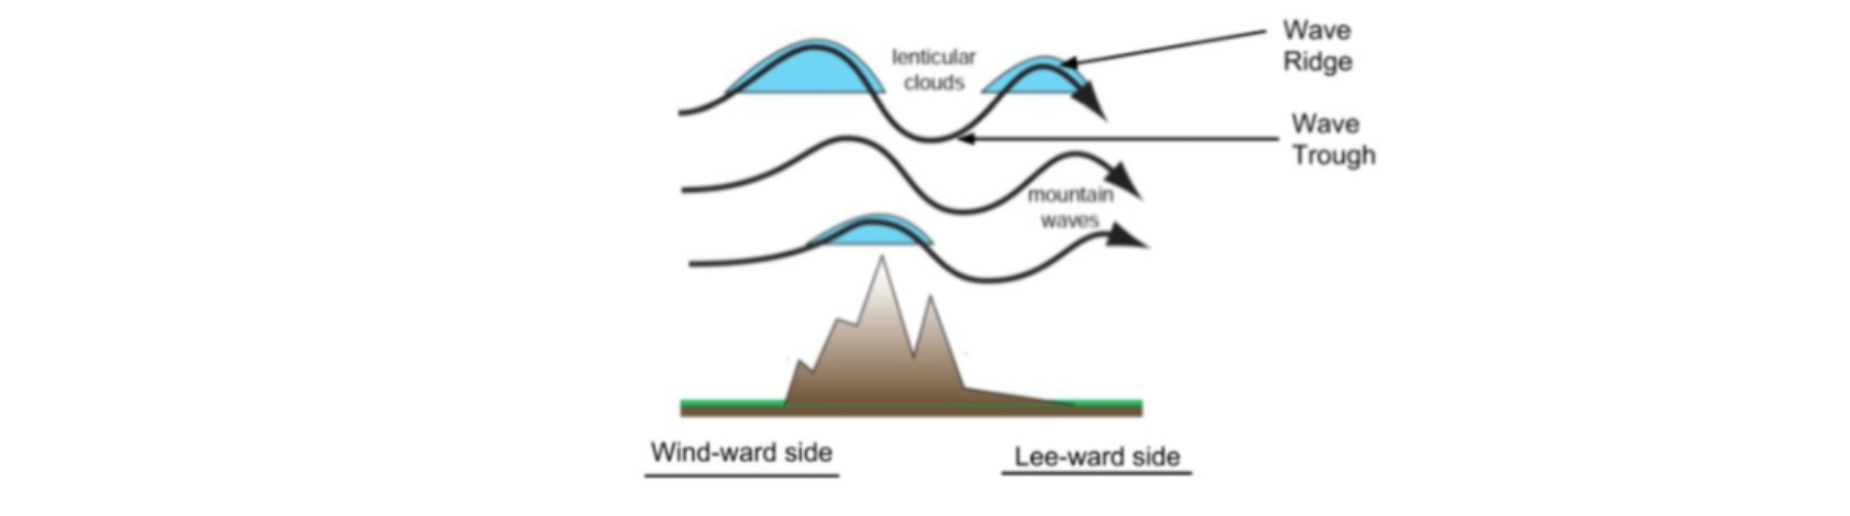 Figure 1: Wind moves from the 'wind-ward side' (left in the picture) toward the 'lee-ward side' or 'lee-side (right). When the wind encounters an obstacle, it is deflected upward, and sometimes forms mountain waves. Lenticular clouds can occur in the ridges of the mountain waves. (After Wallace and Hobbs, 2006).